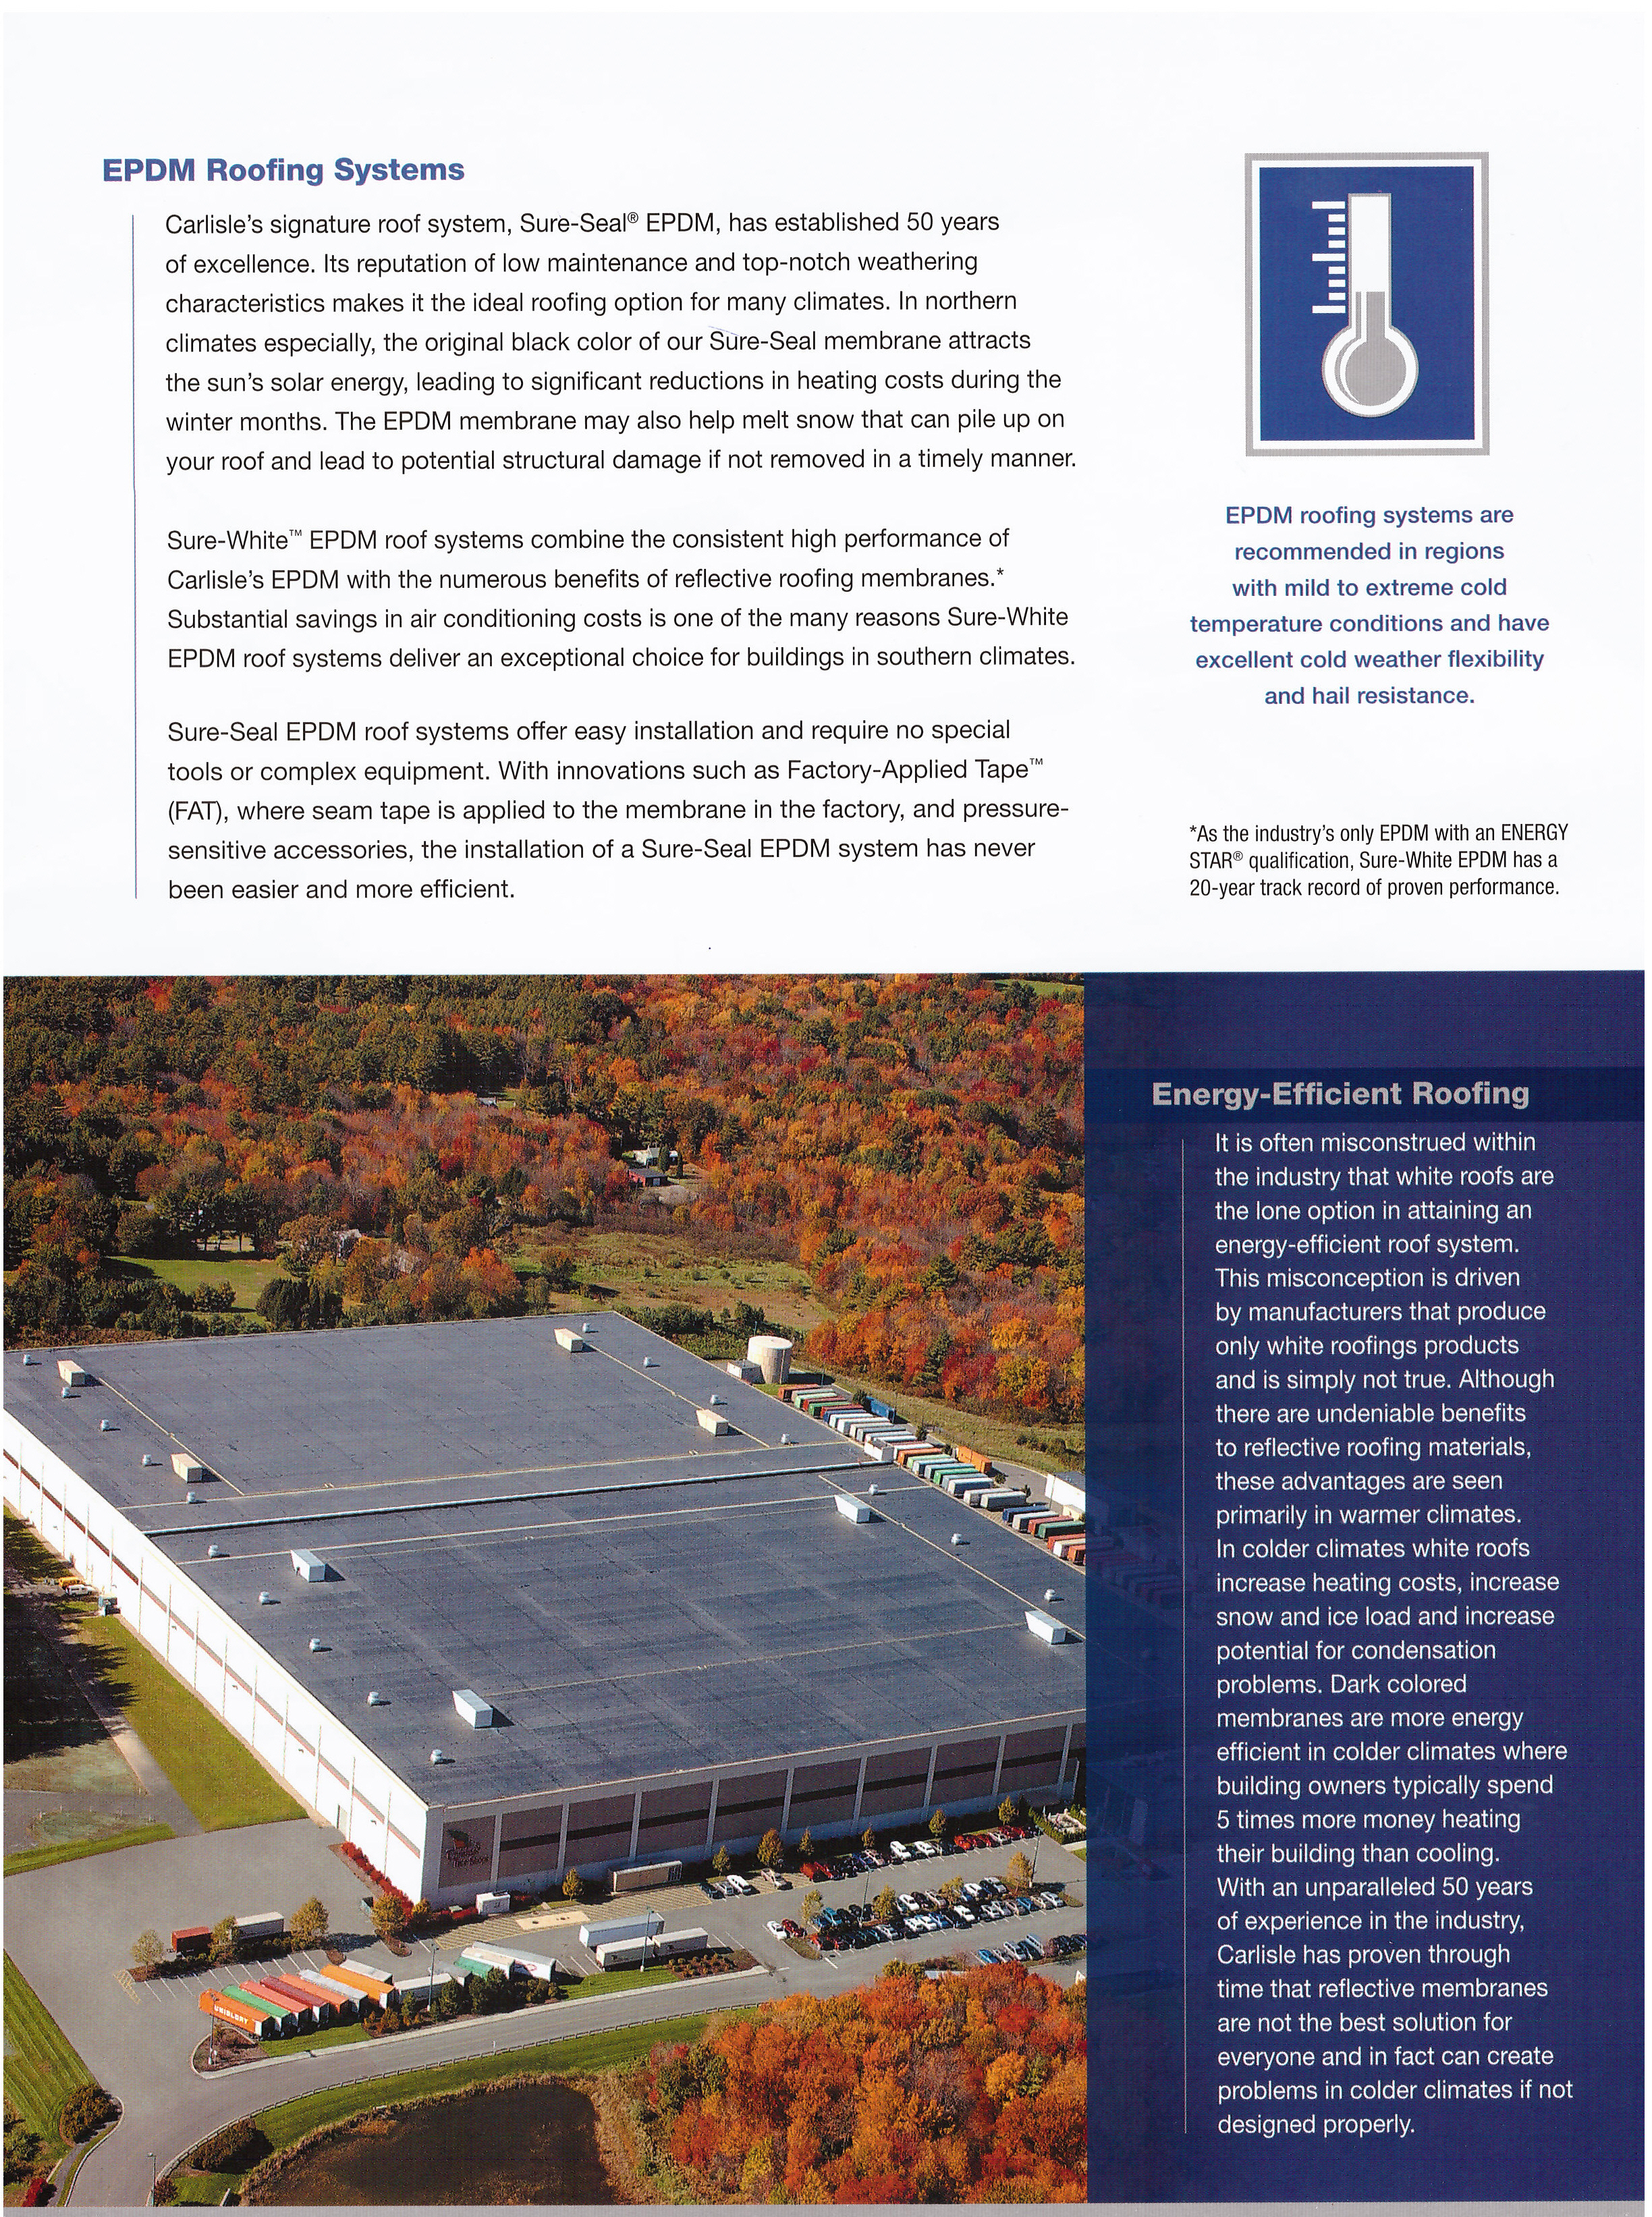 ROOFING SYSTEM 3PAGE.JPG